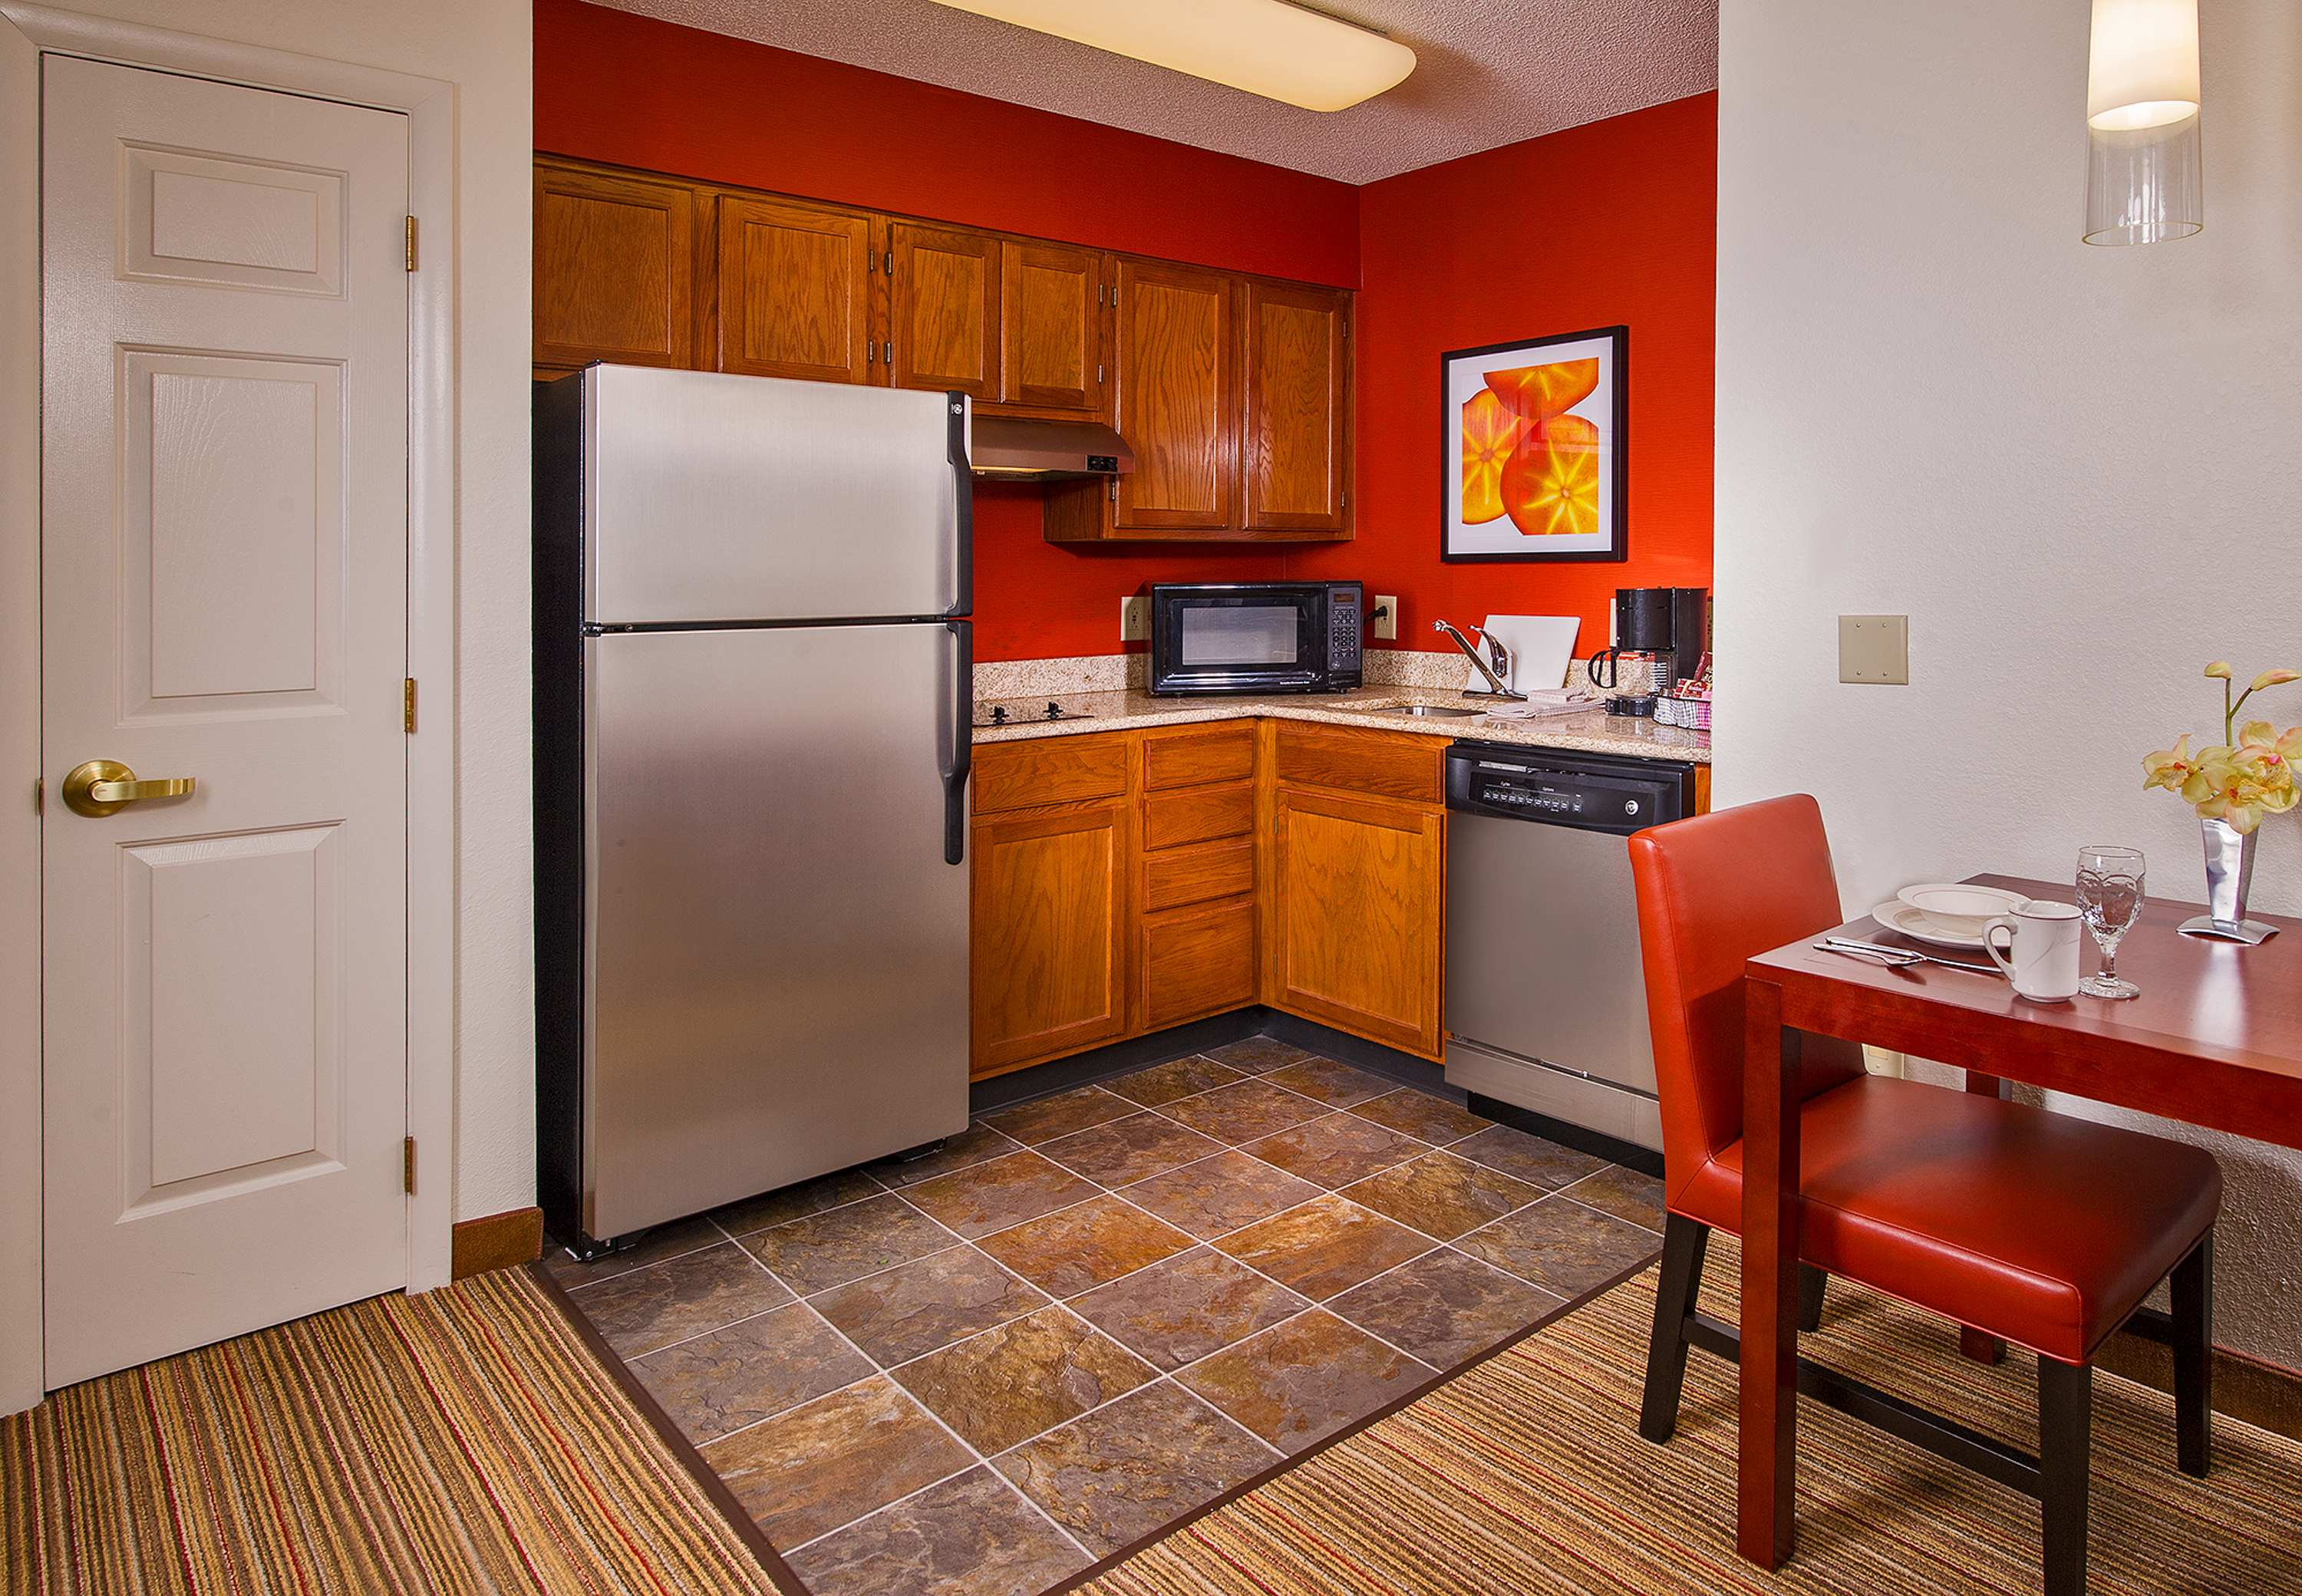 Residence Inn by Marriott Raleigh Cary image 1